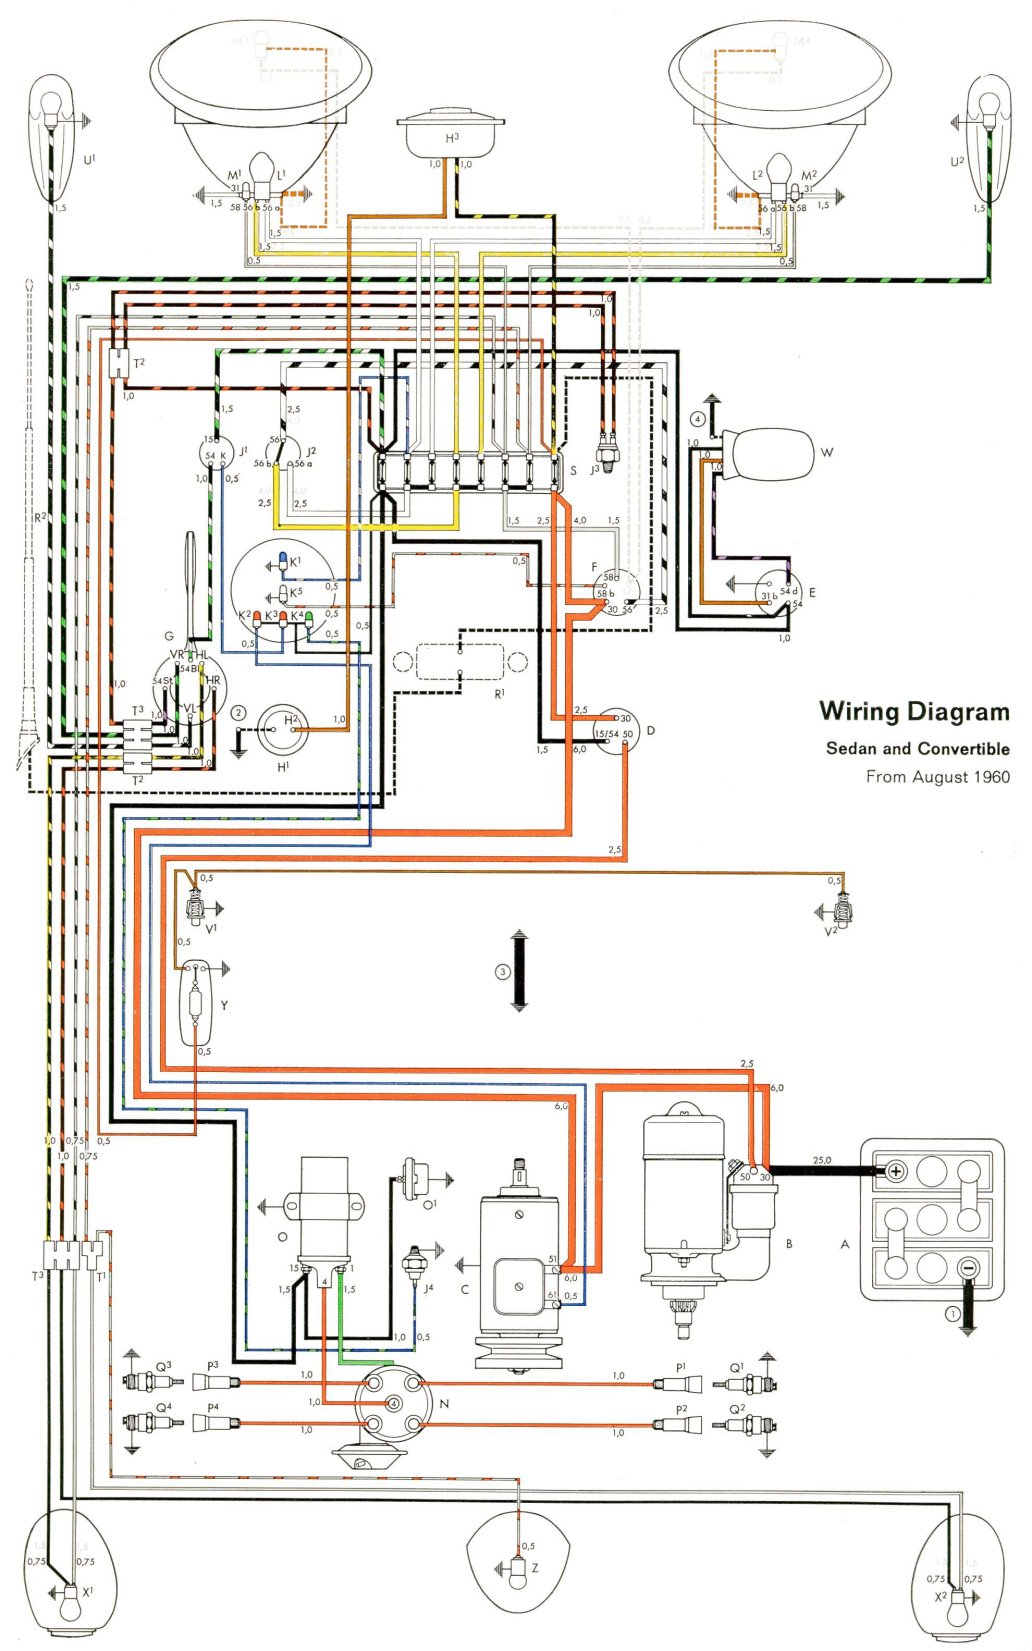 bug_61 vw dune buggy wiring diagram vw air cooled engine diagram \u2022 free DIY Lingerie Harness at virtualis.co